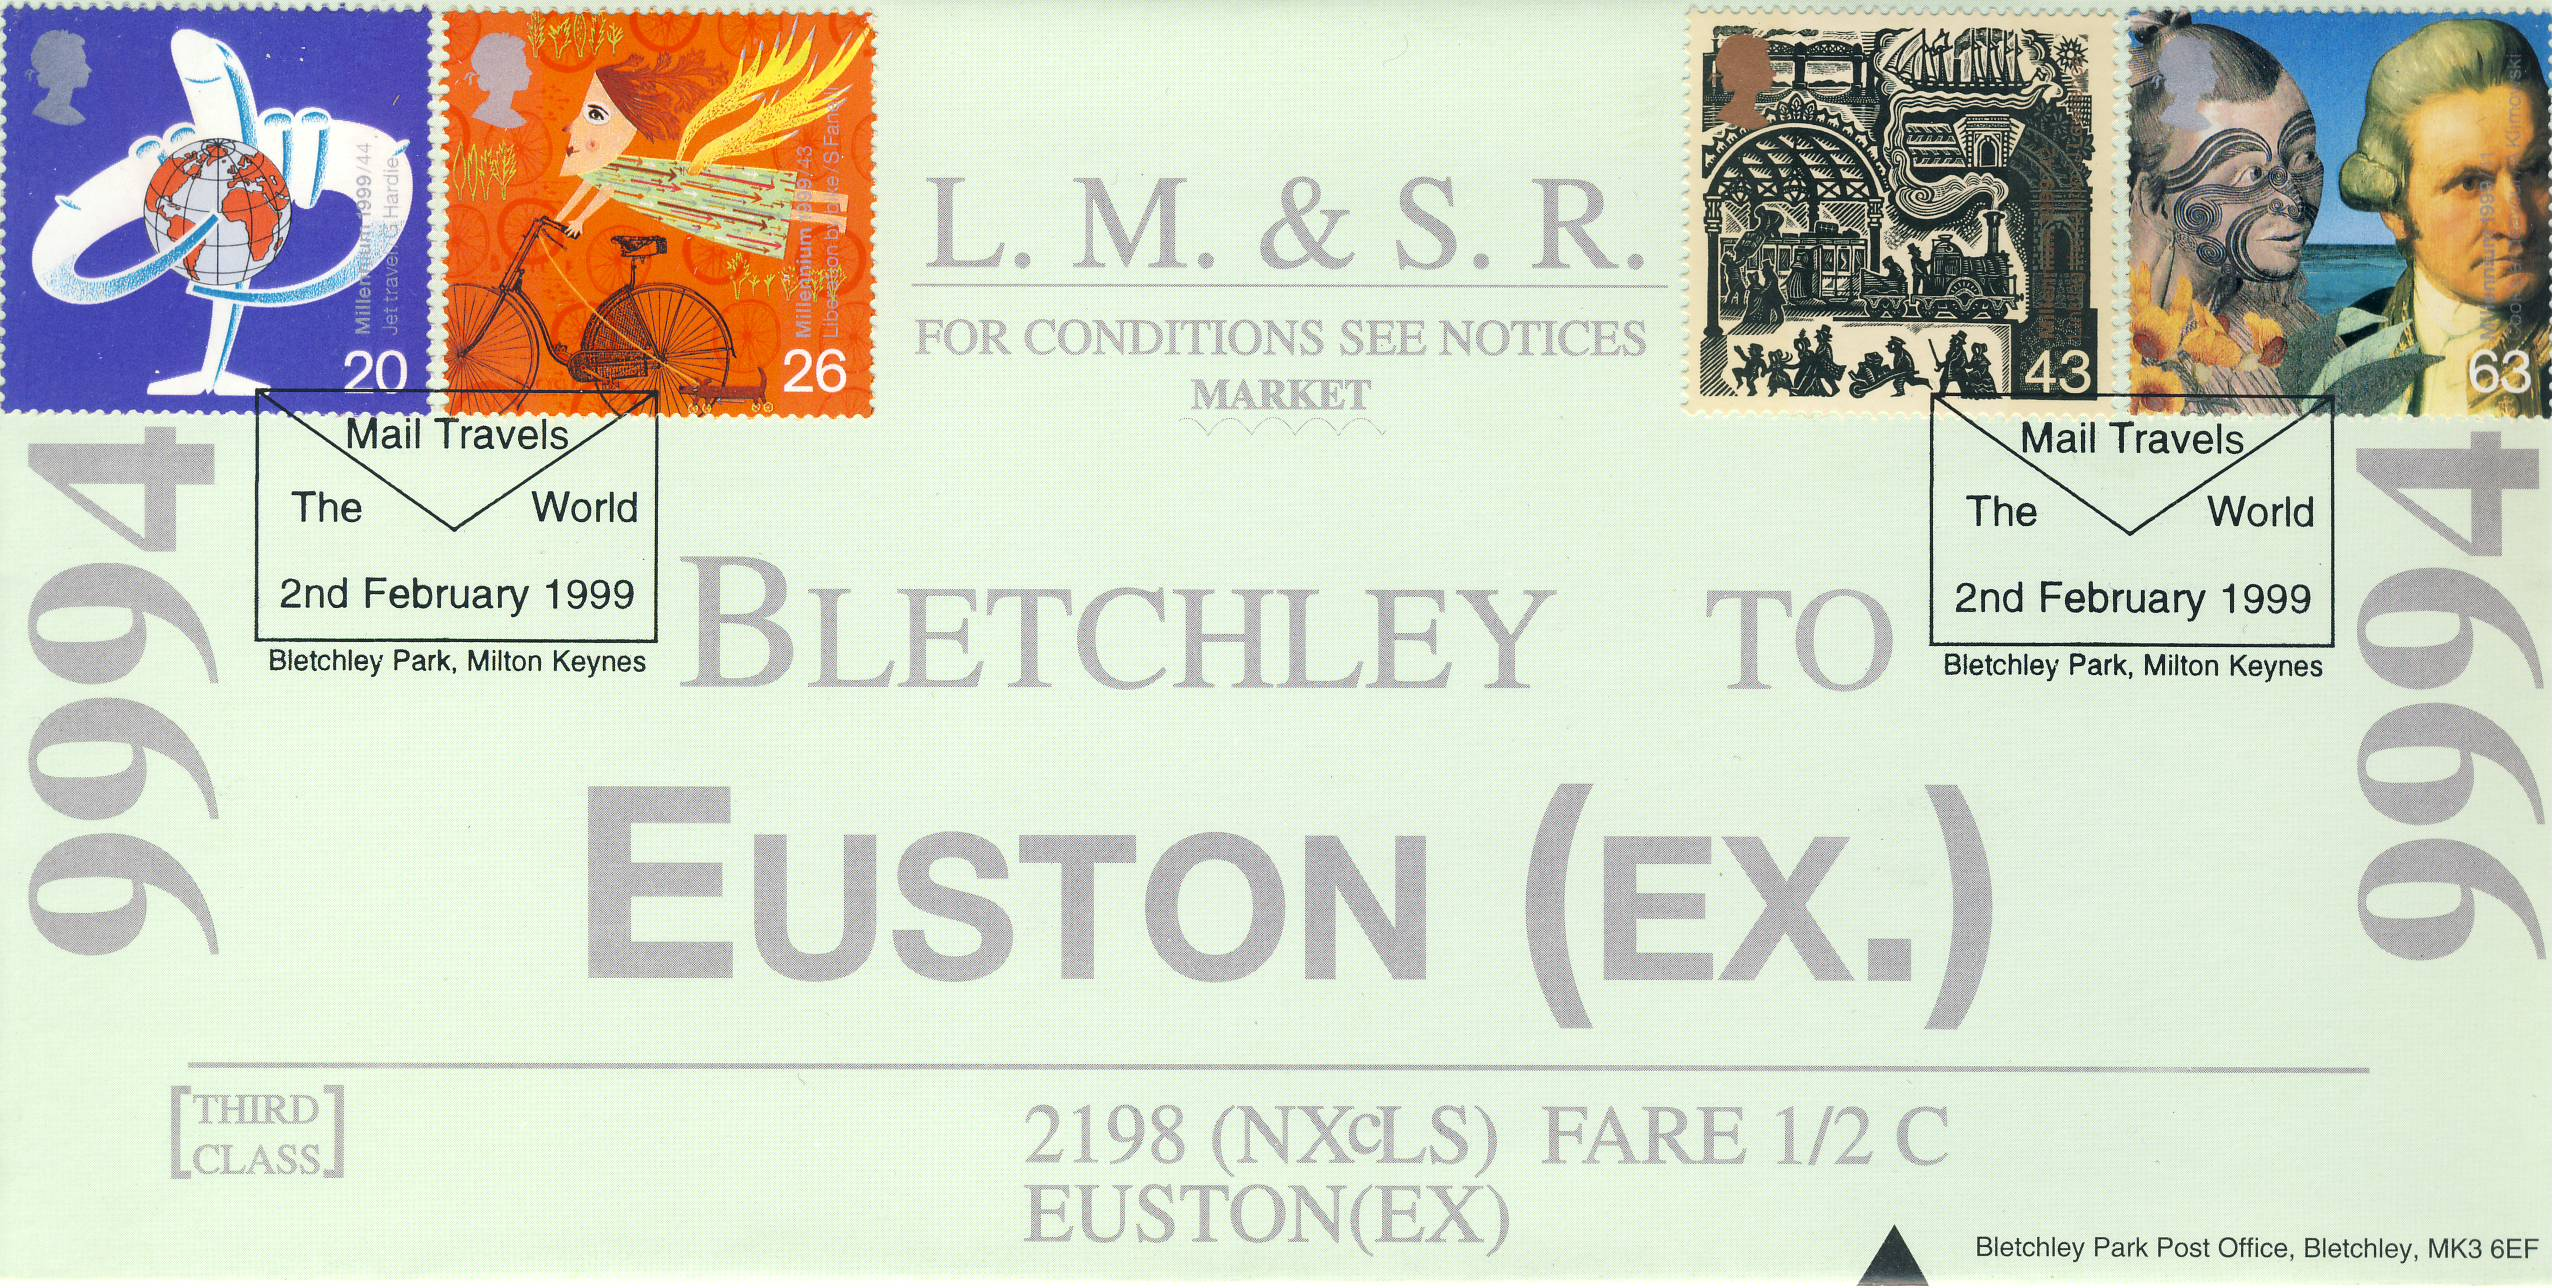 2nd February 1999 Mail Travels The World L.M.&S.R. EUSTON (Ex.) BLETCHLEY PARK Limited Edition cover FDC postmark This is a limited edition Enigma Codebreakers stamp cover numbered 132 of 200.  Very good condition.